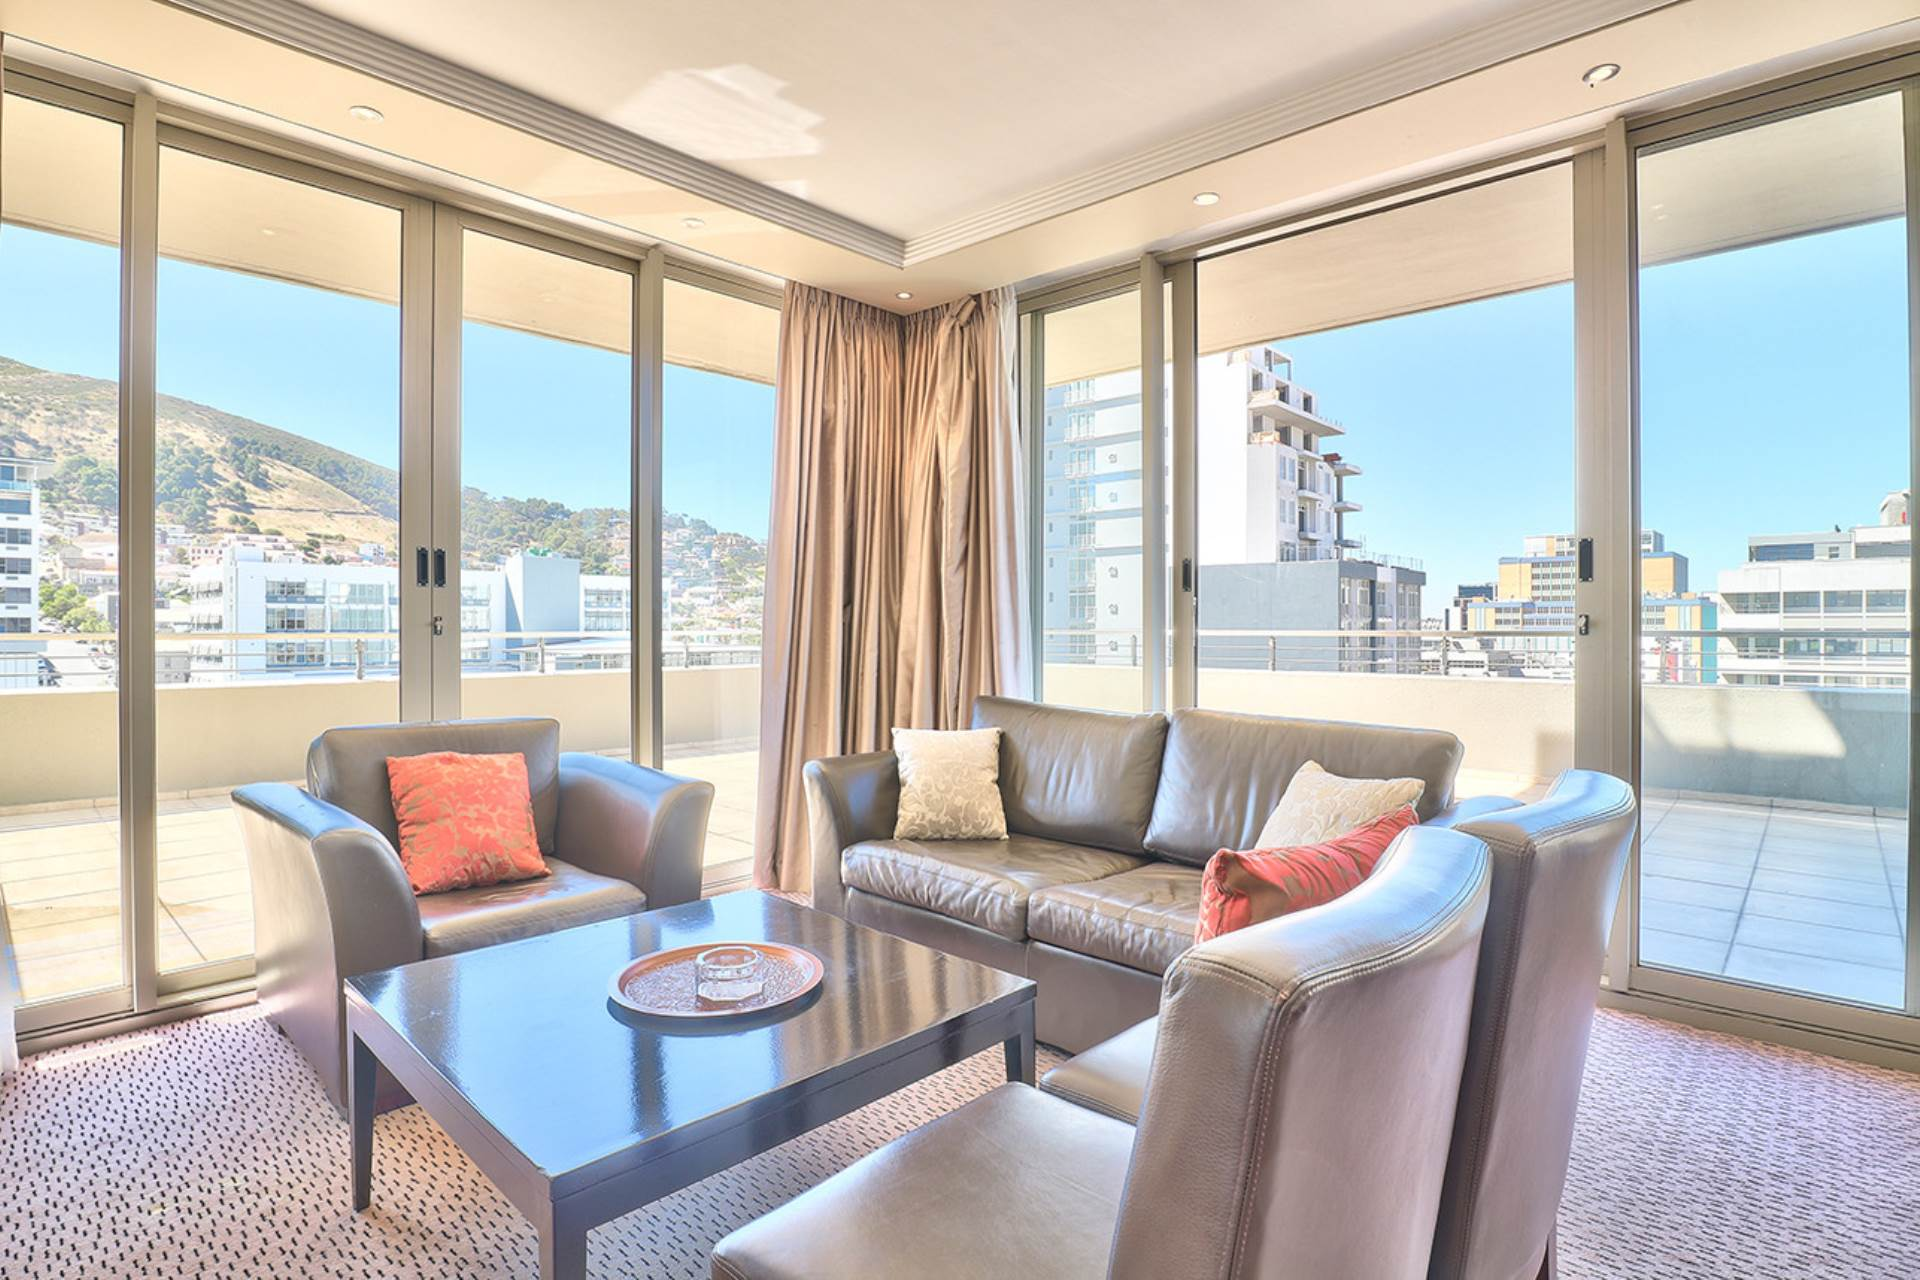 2 BedroomApartment For Sale In Cape Town